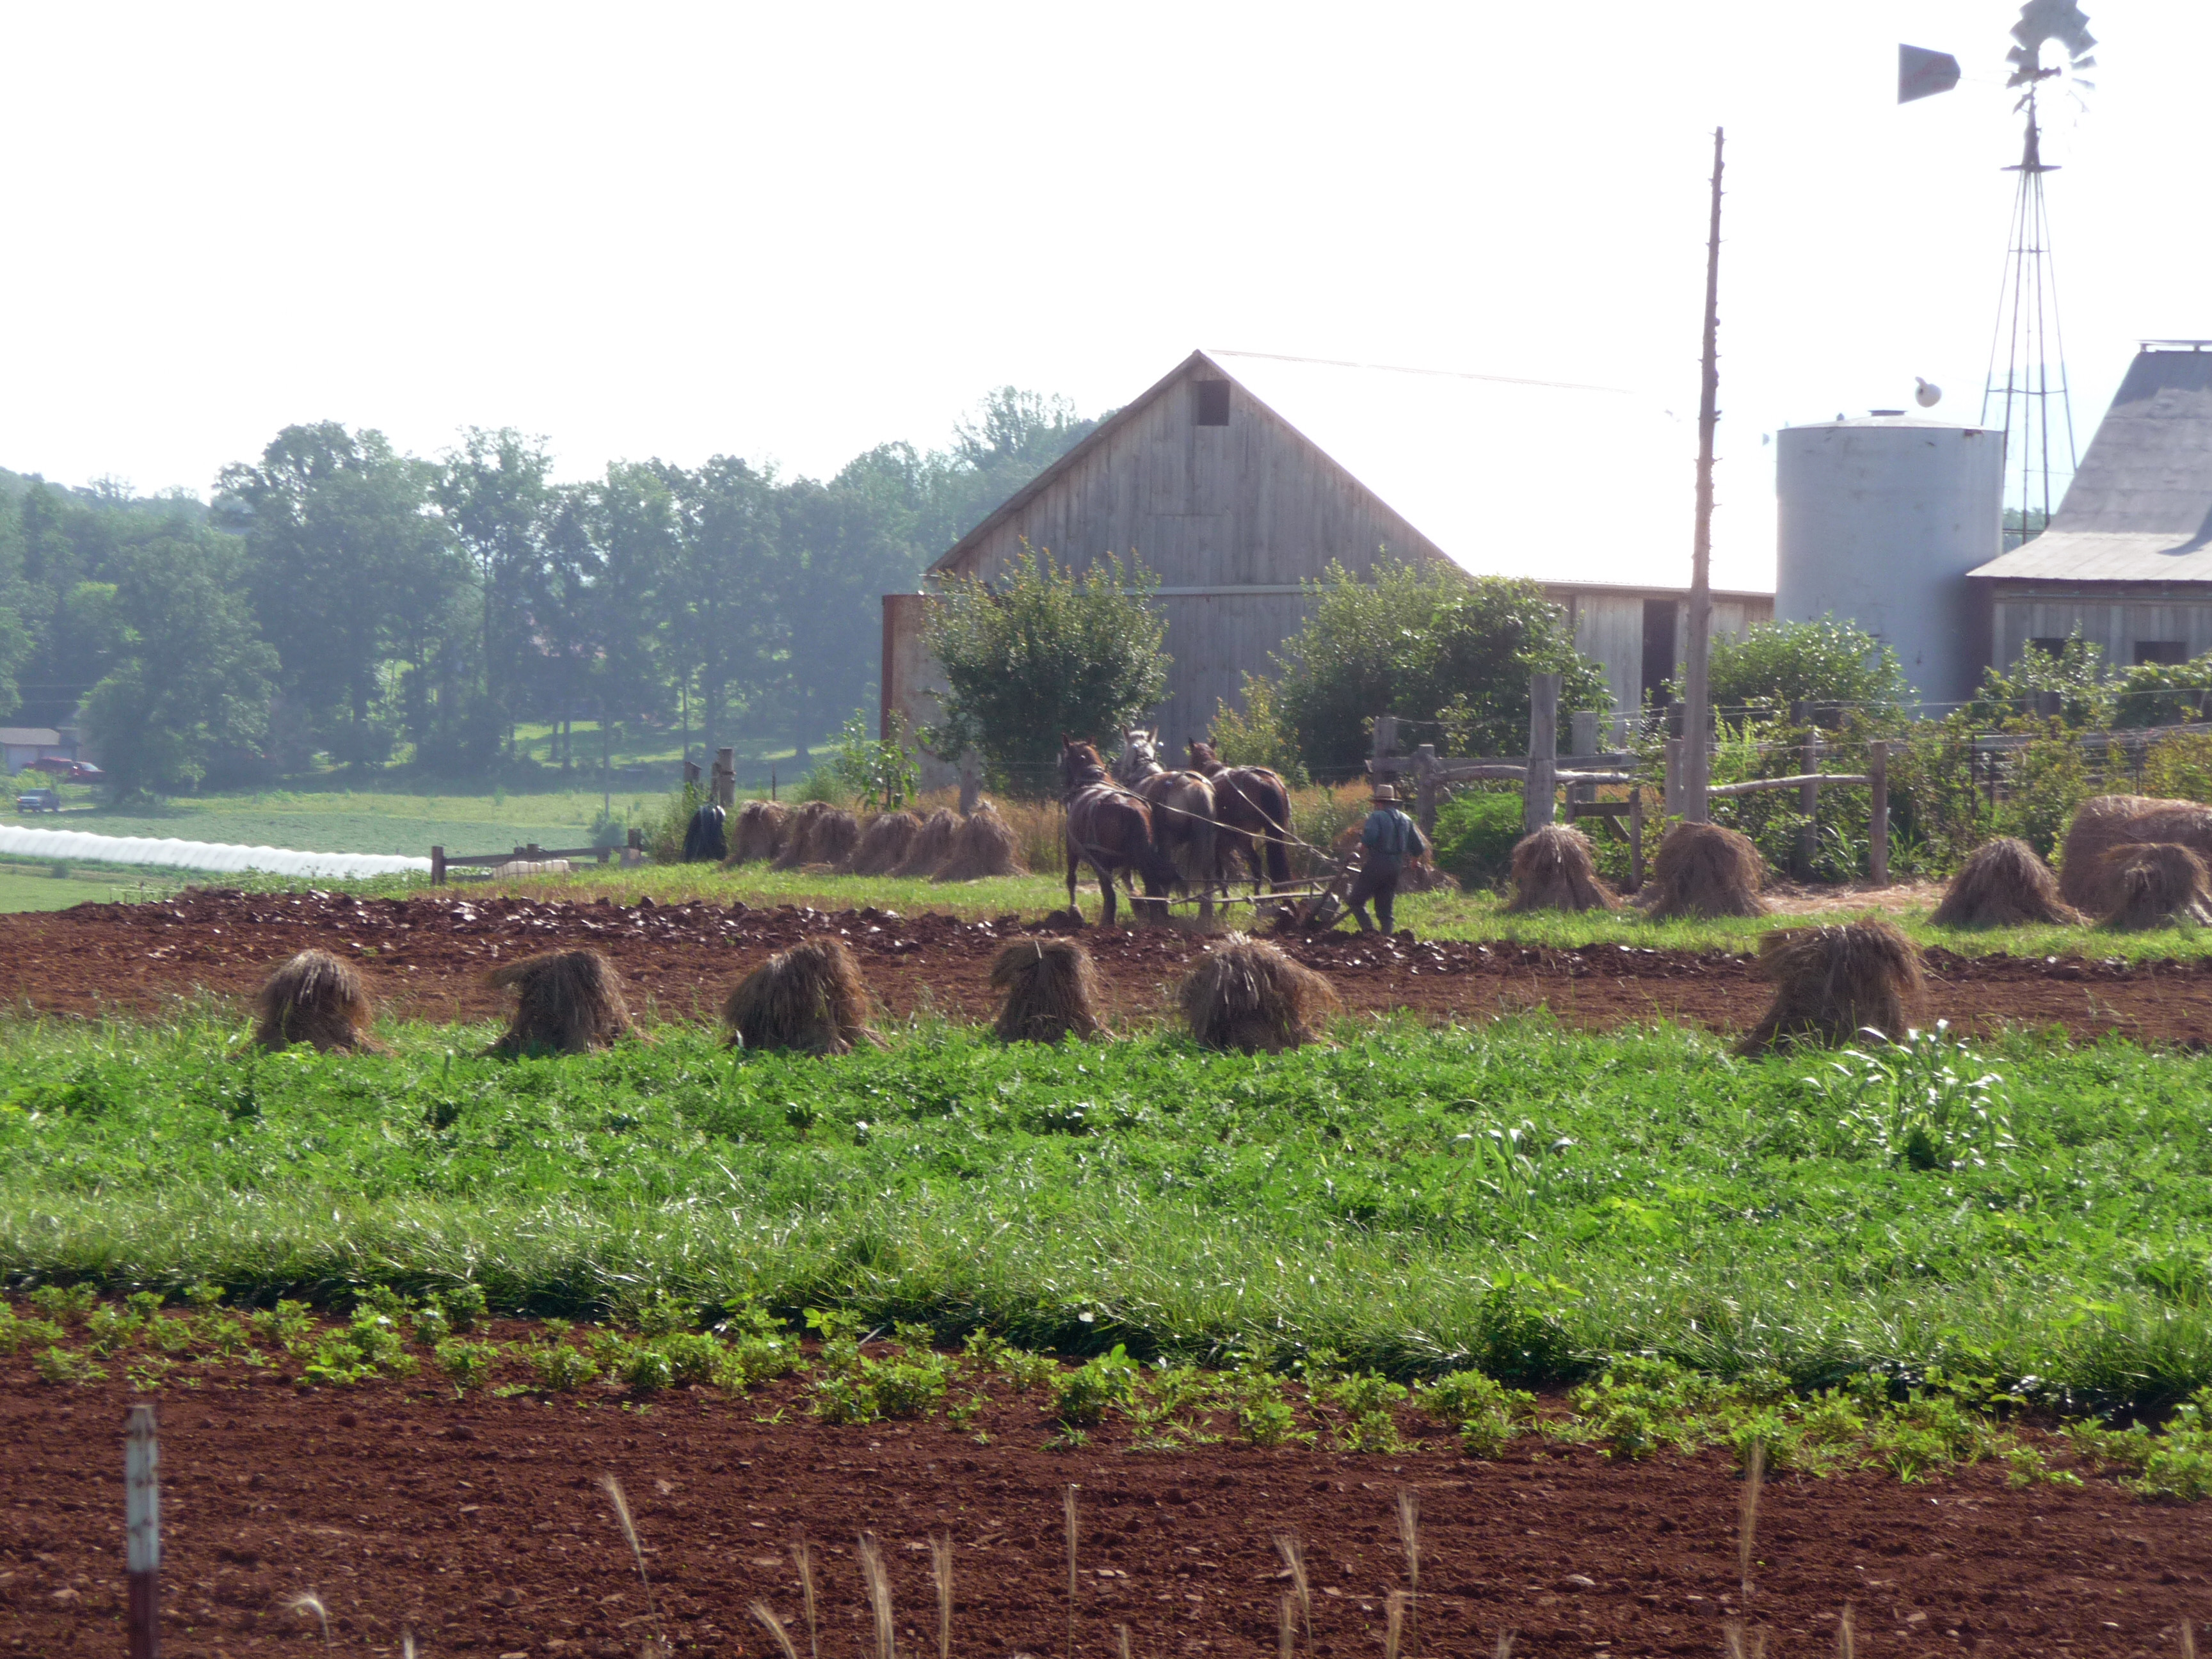 tractor-less farming